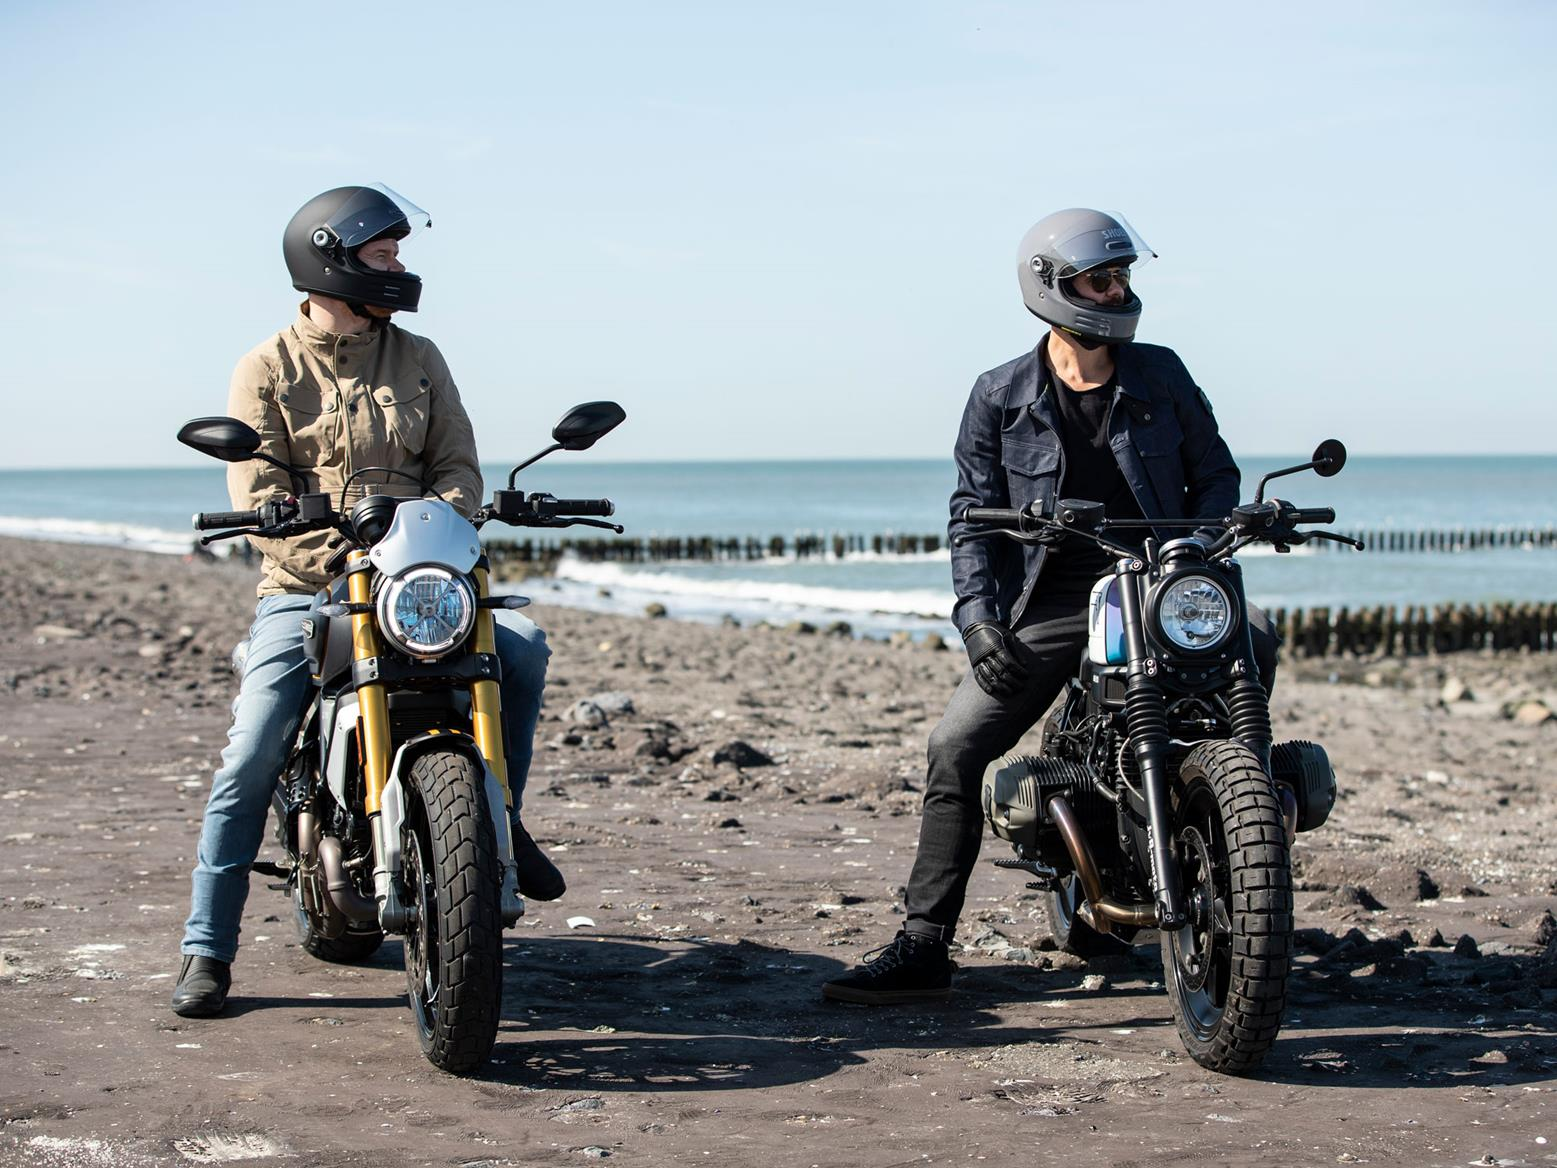 The Shoei Glamster can be won in our competition